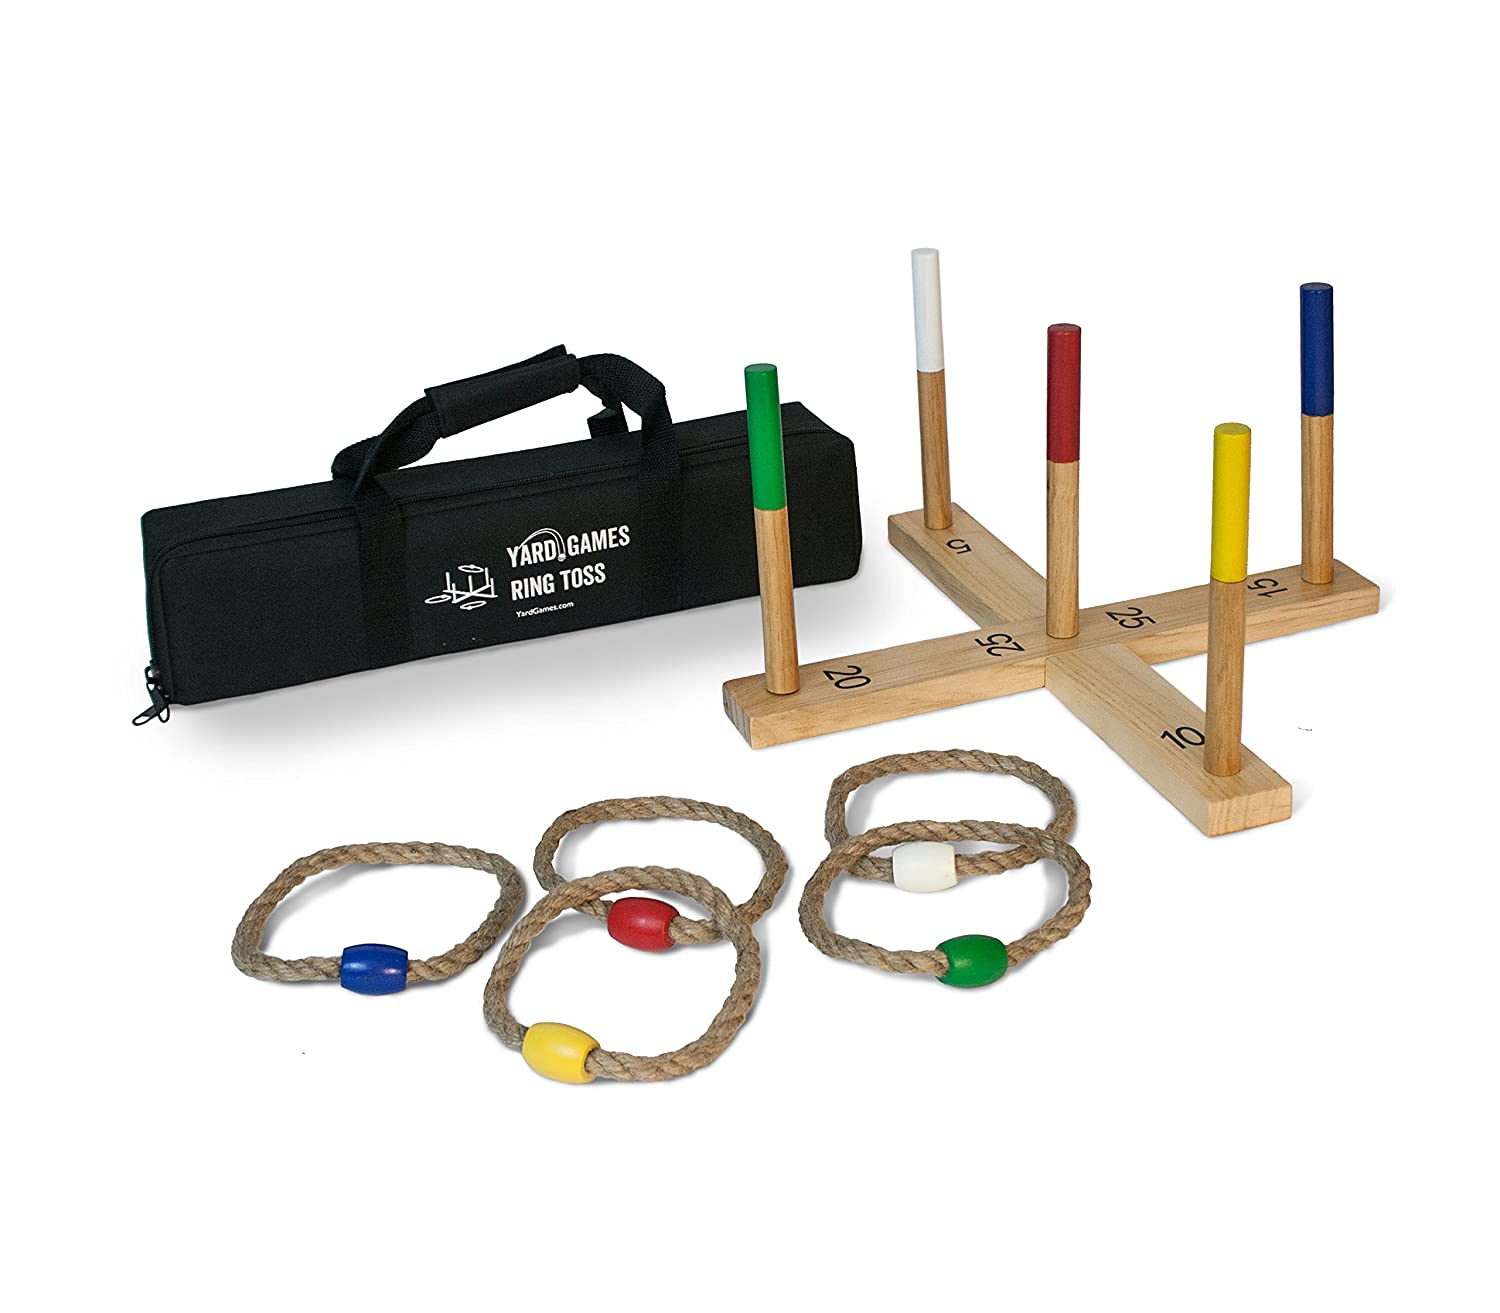 Yard Games Ring Toss Game Premium Set